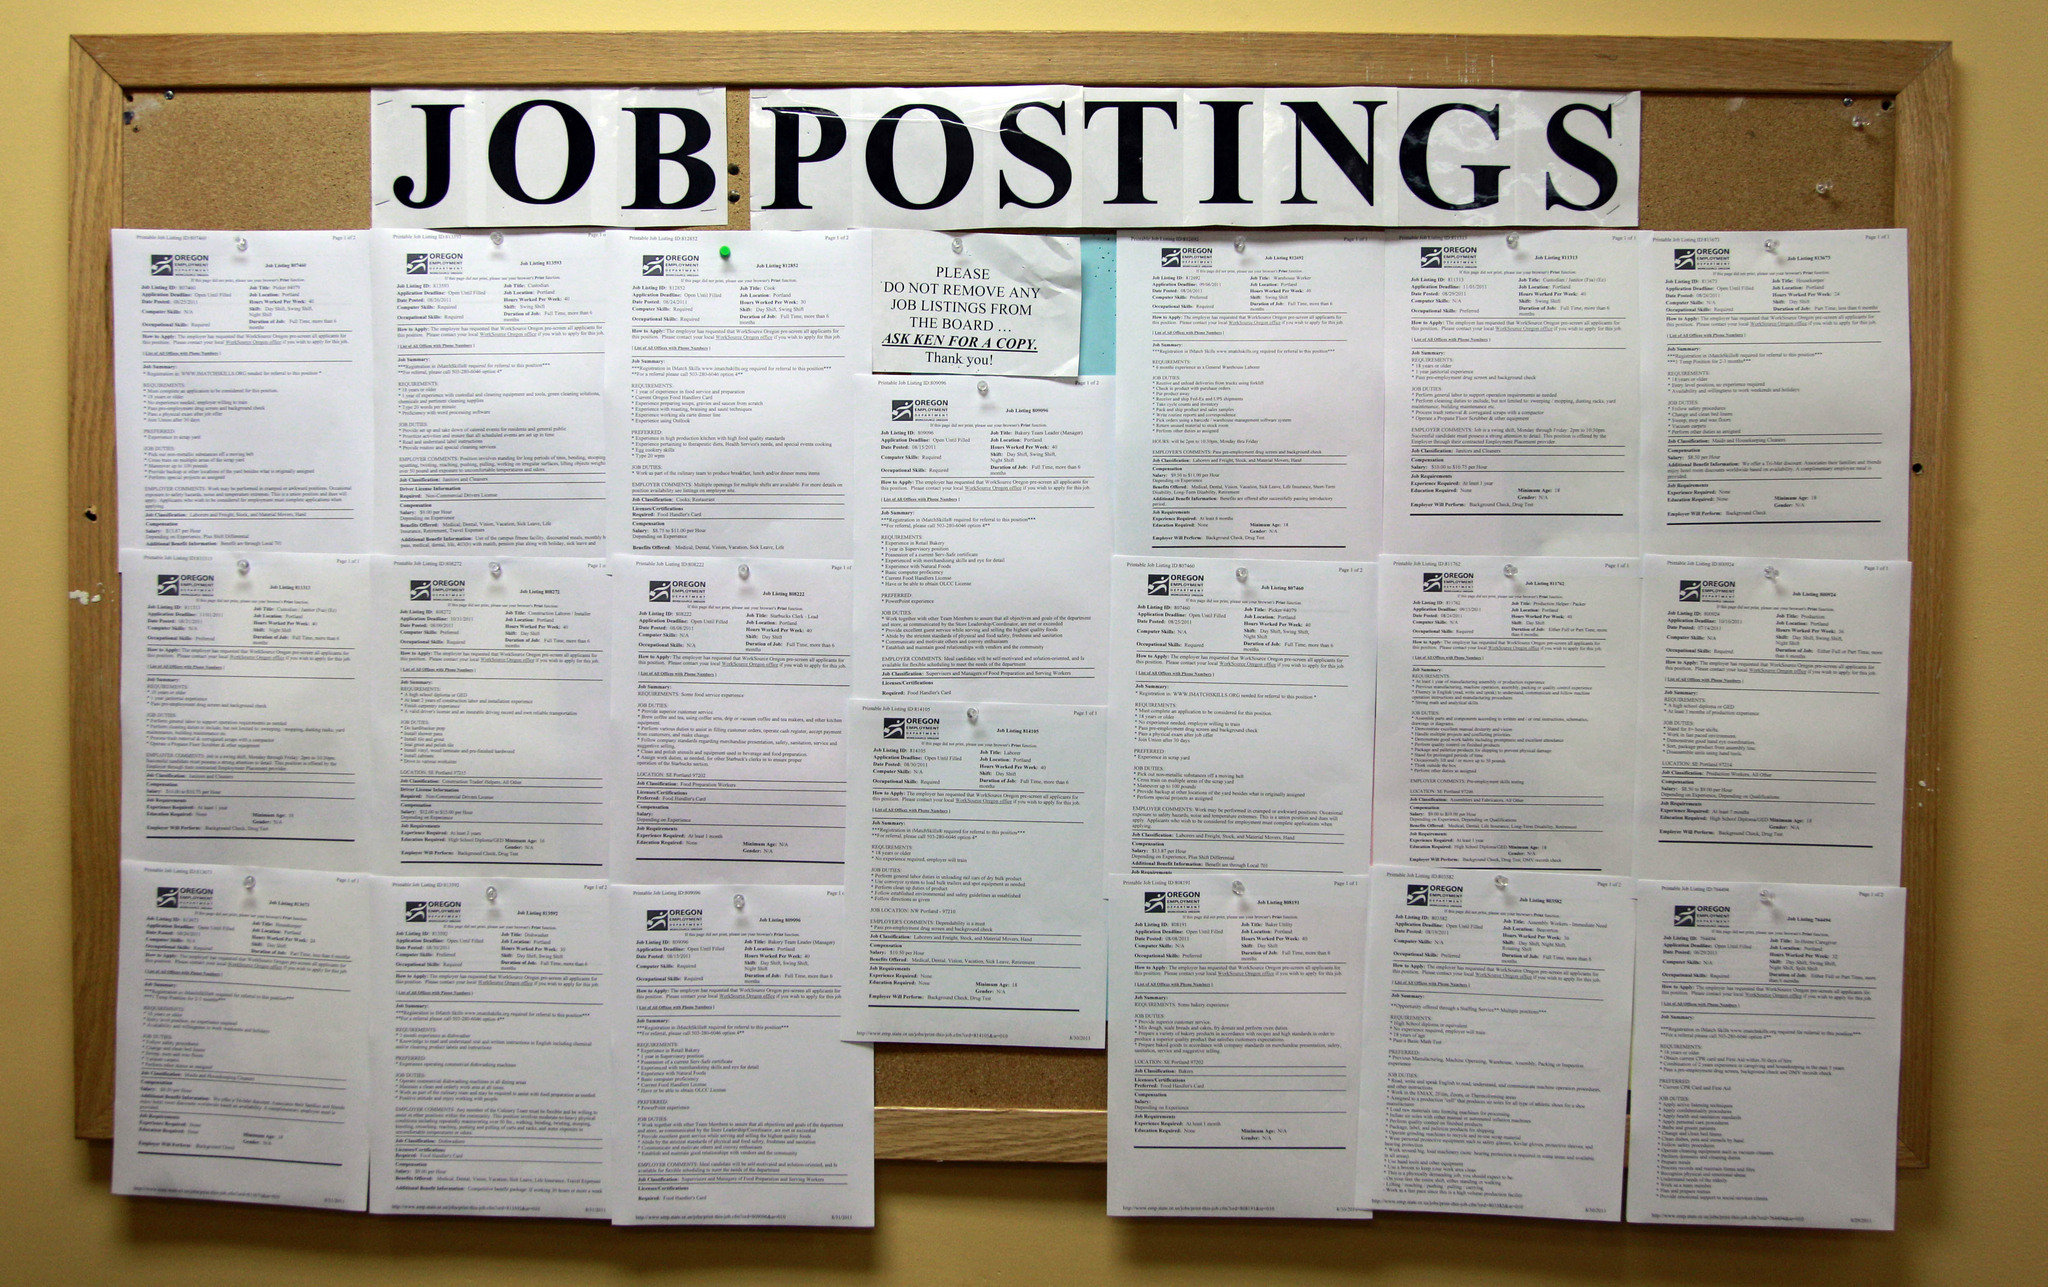 n-unique-job-board-edmonton-job-board-enterprises-job-board-edmonton-job-board-eau-claire-job-board-enterprises-ltd-job-board-euromed-job-board-examples-job-board-europe-job-board-emily-carr-.jpg